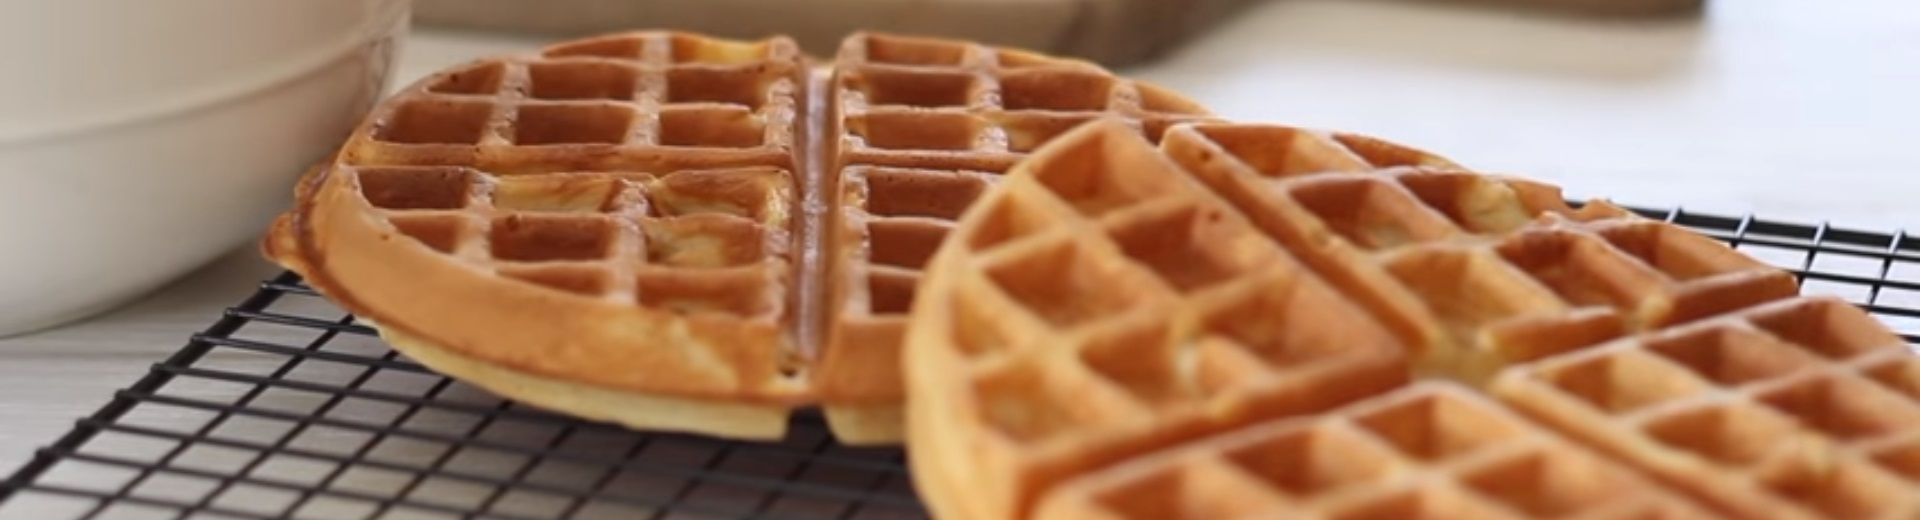 What is the difference between a Belgian waffle and a regular waffle?